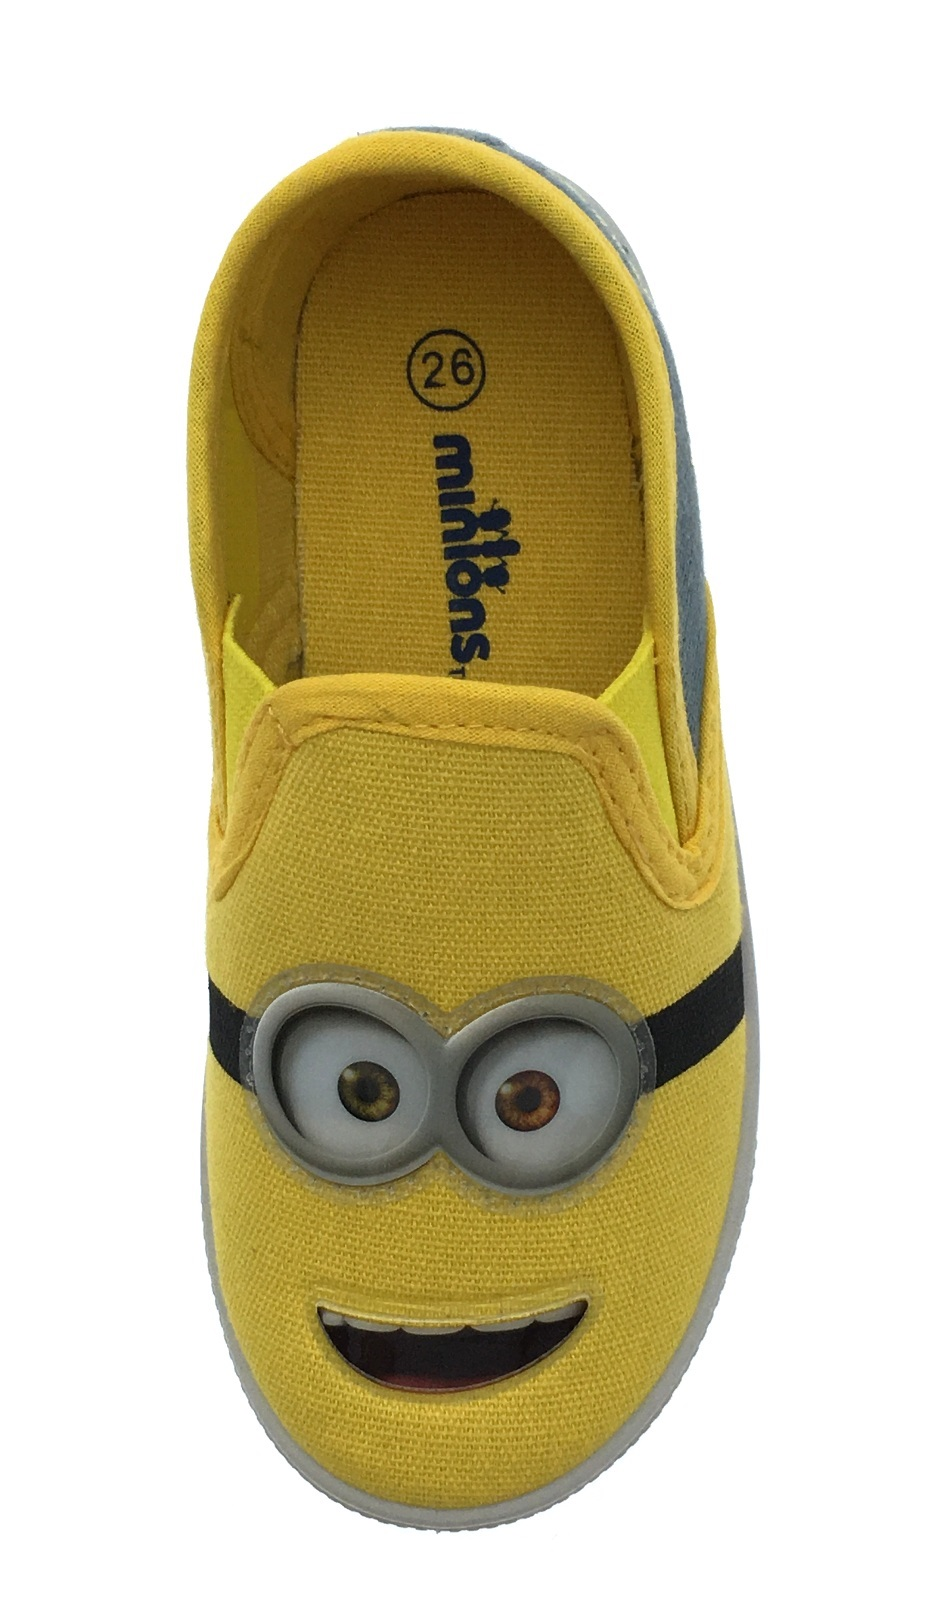 Boys Minions Canvas Pumps Flat Casual Shoes Trainers From Despicable Me Kids